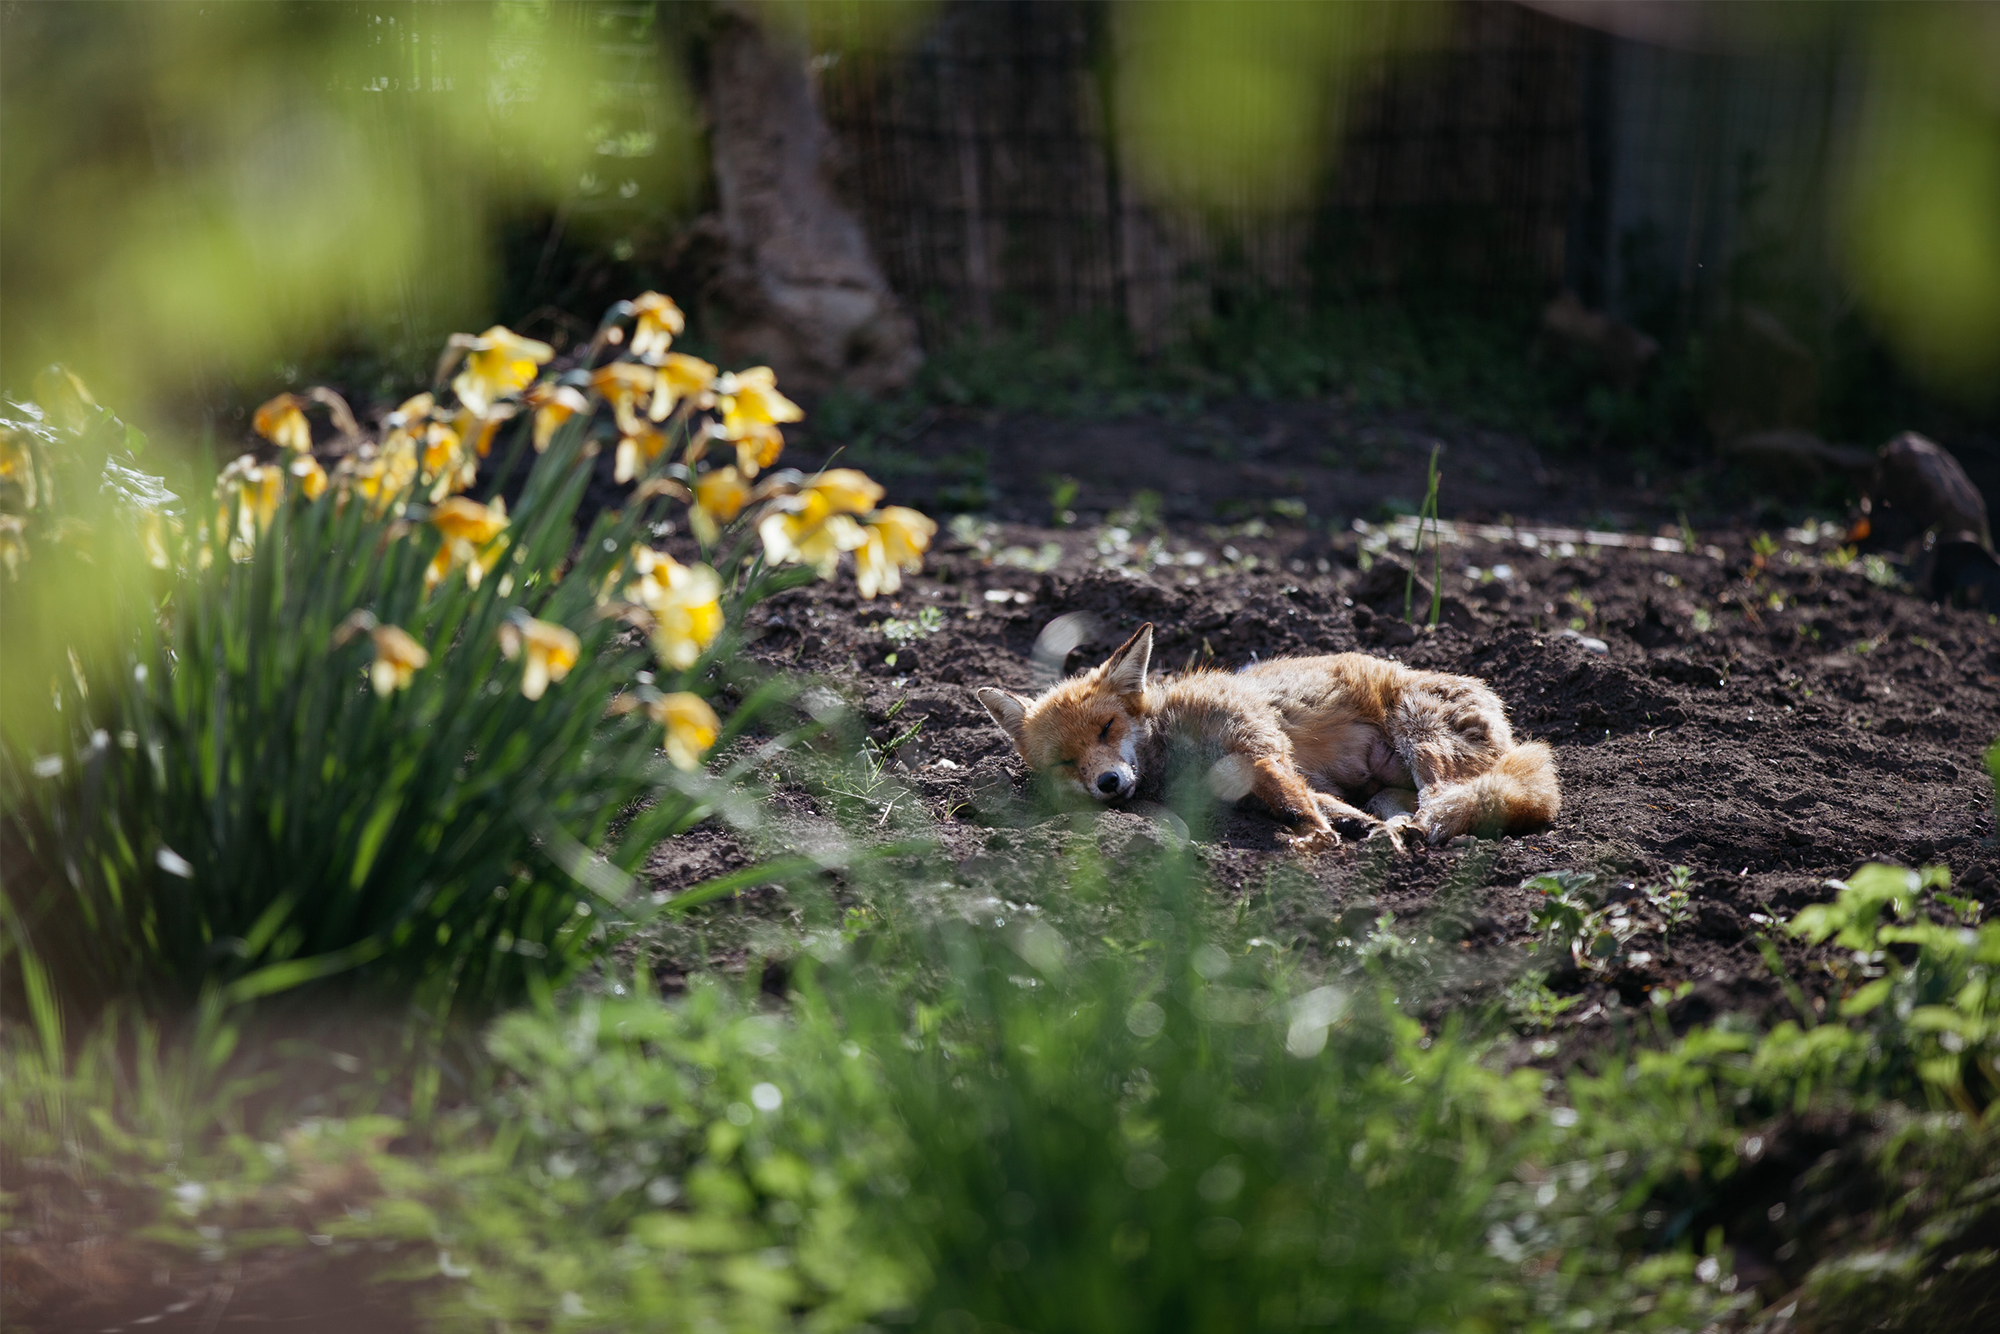 An urban fox snoozes on an allotment plot in spring.